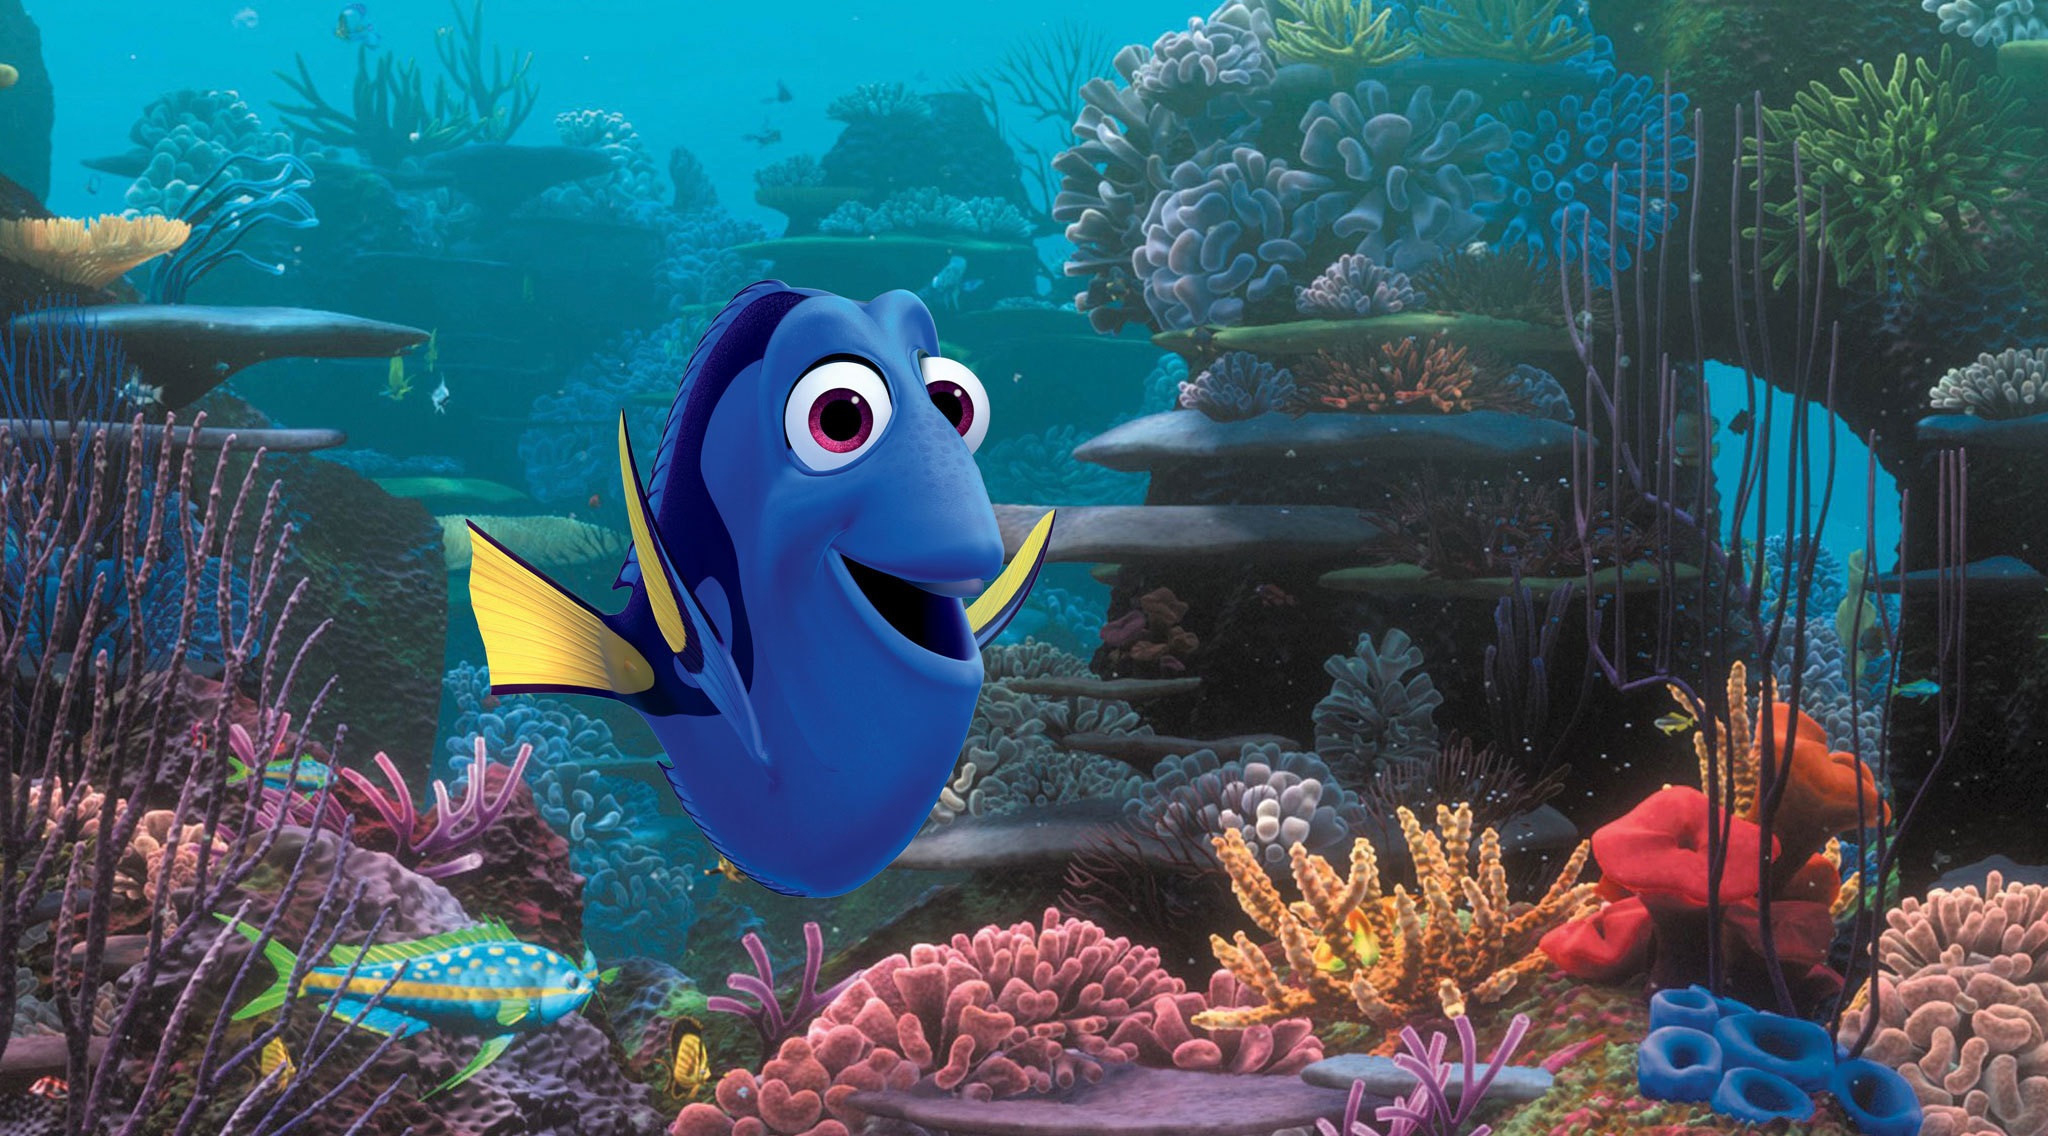 16 blockbuster movies to look forward to in 2016: Finding Dory